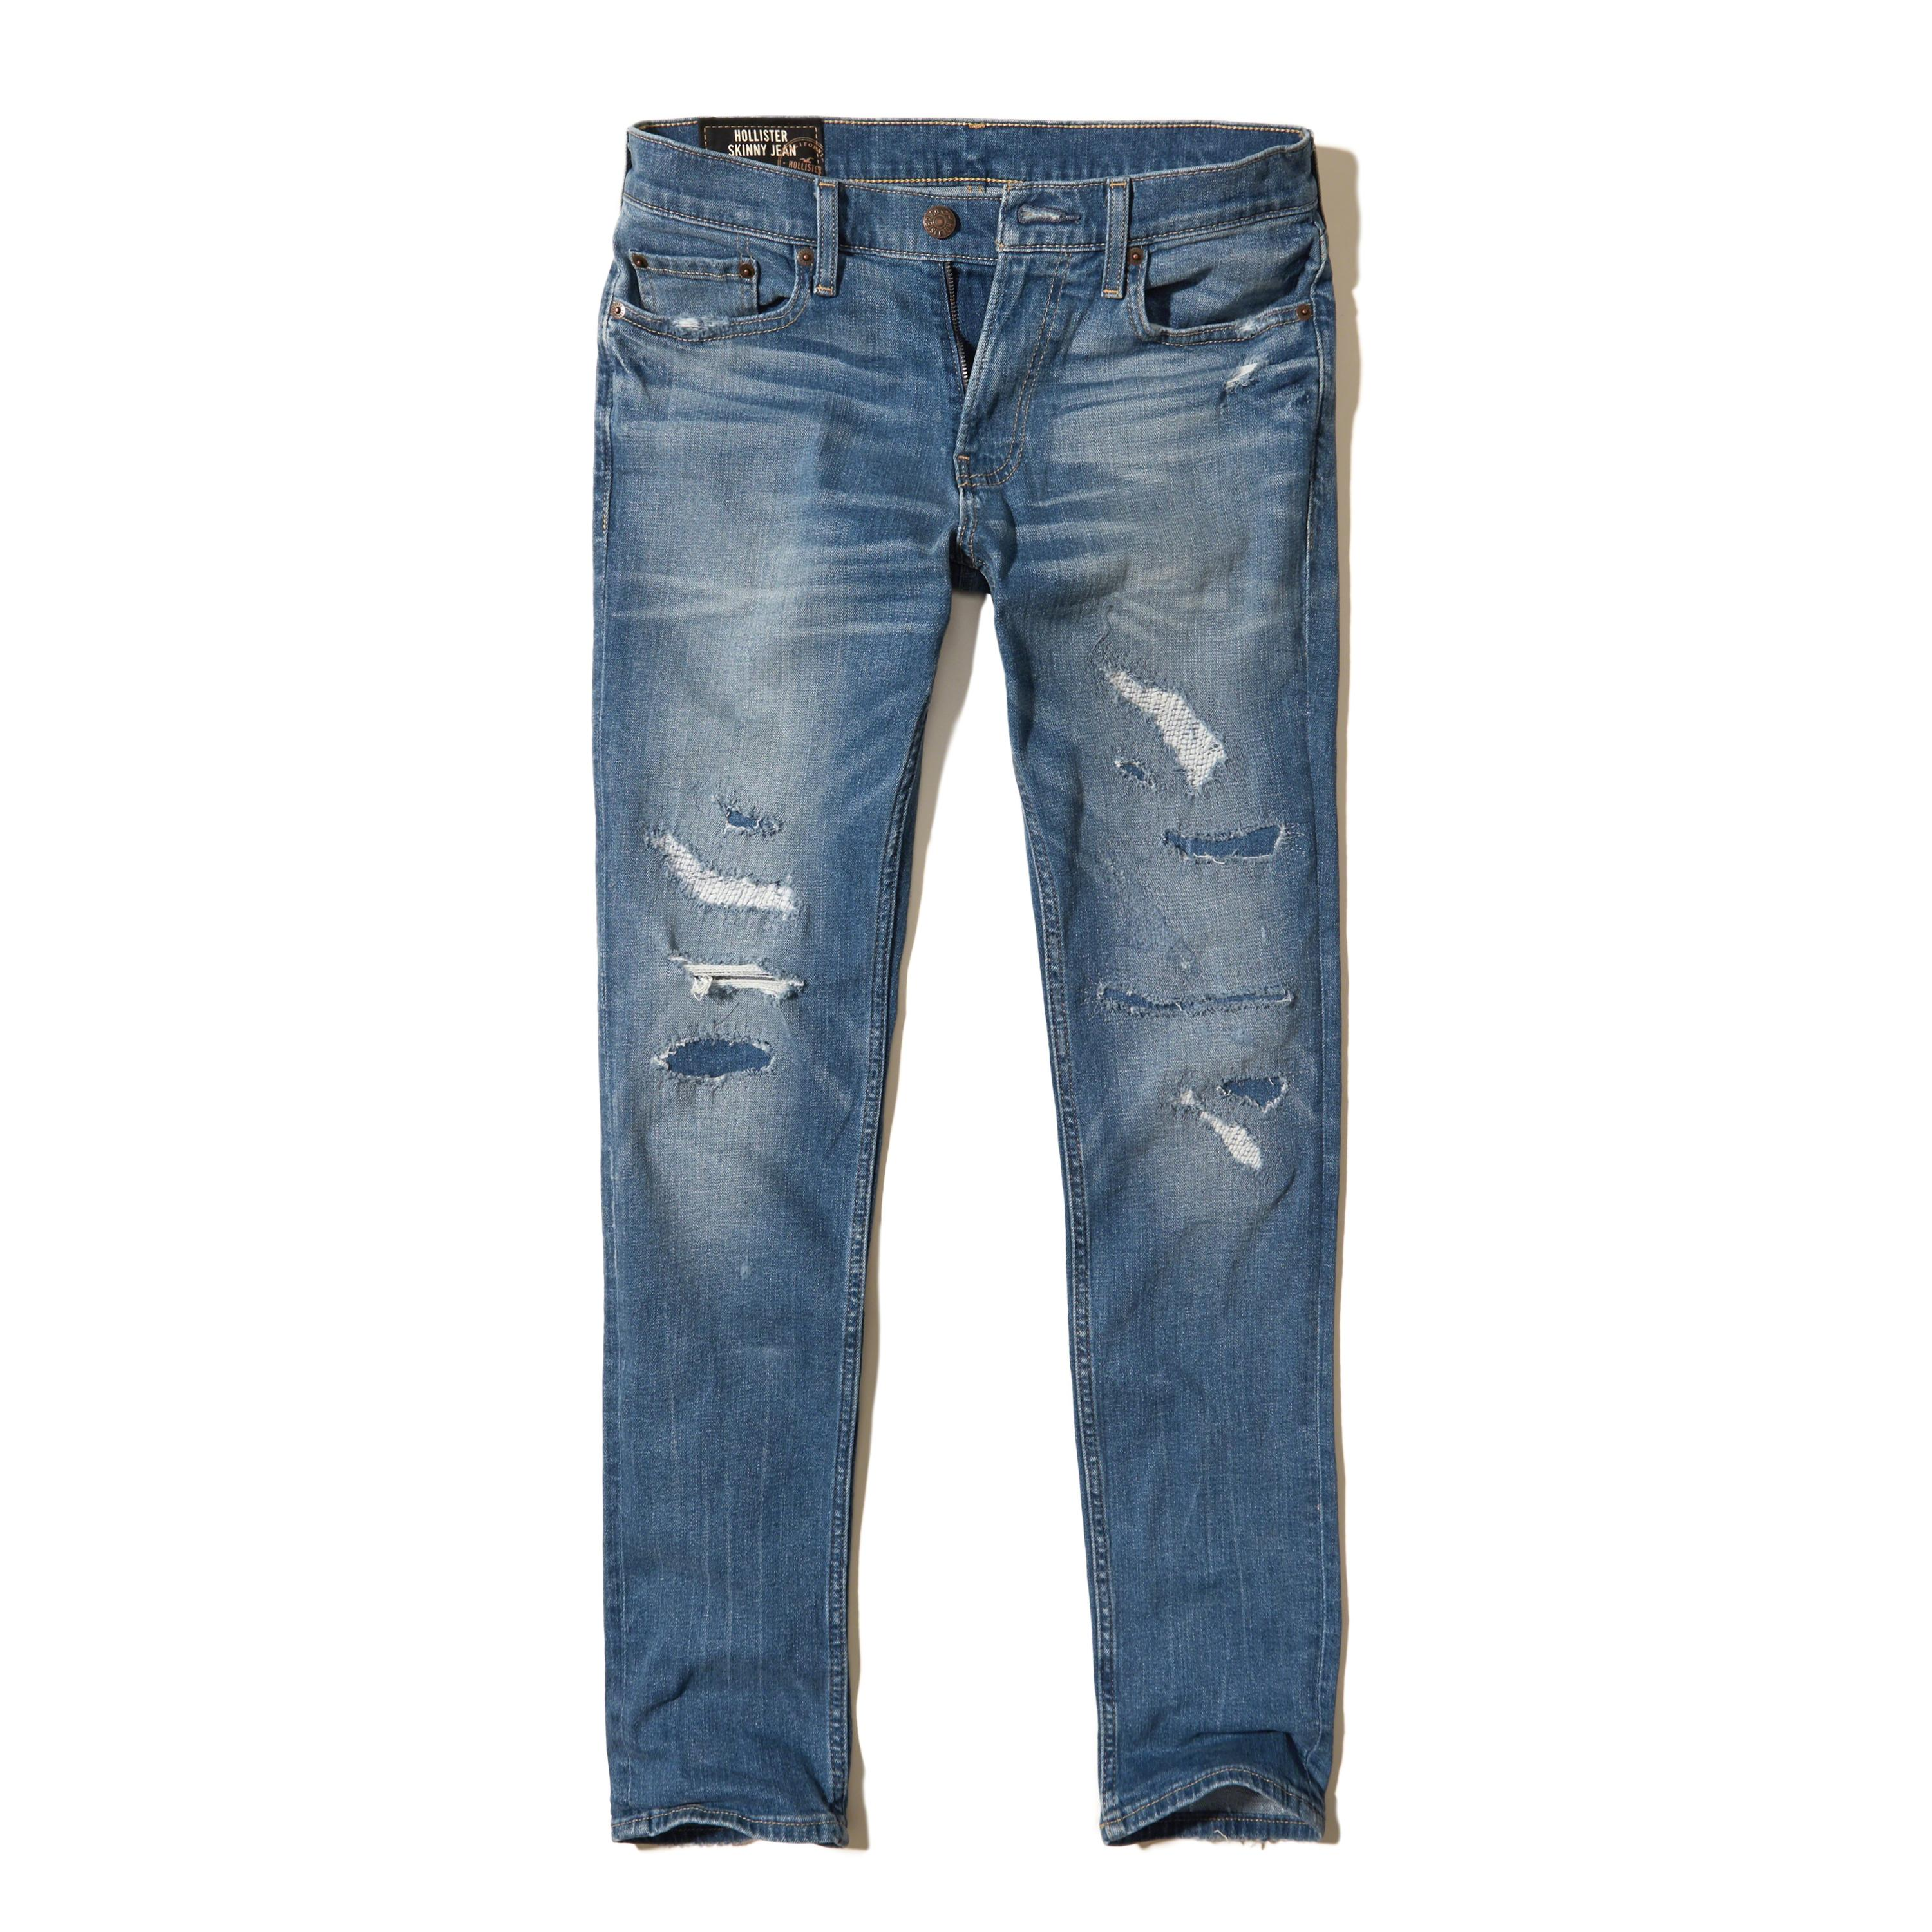 Lyst - Hollister Ripped And Repaired Skinny Jeans in Blue ...